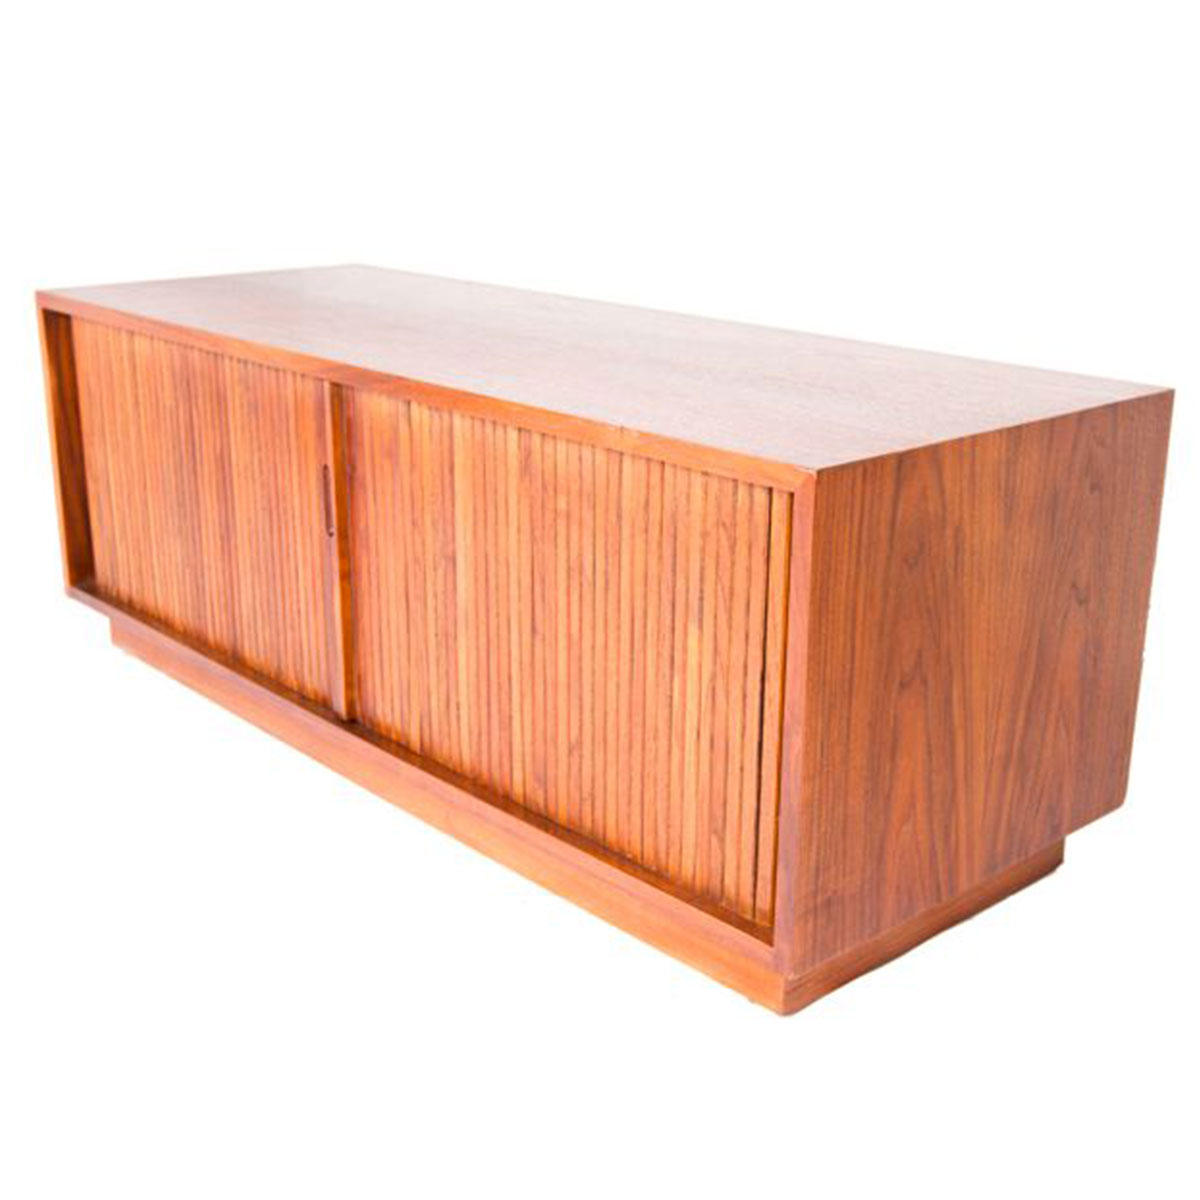 The Record Cabinet All Your Friends Want!